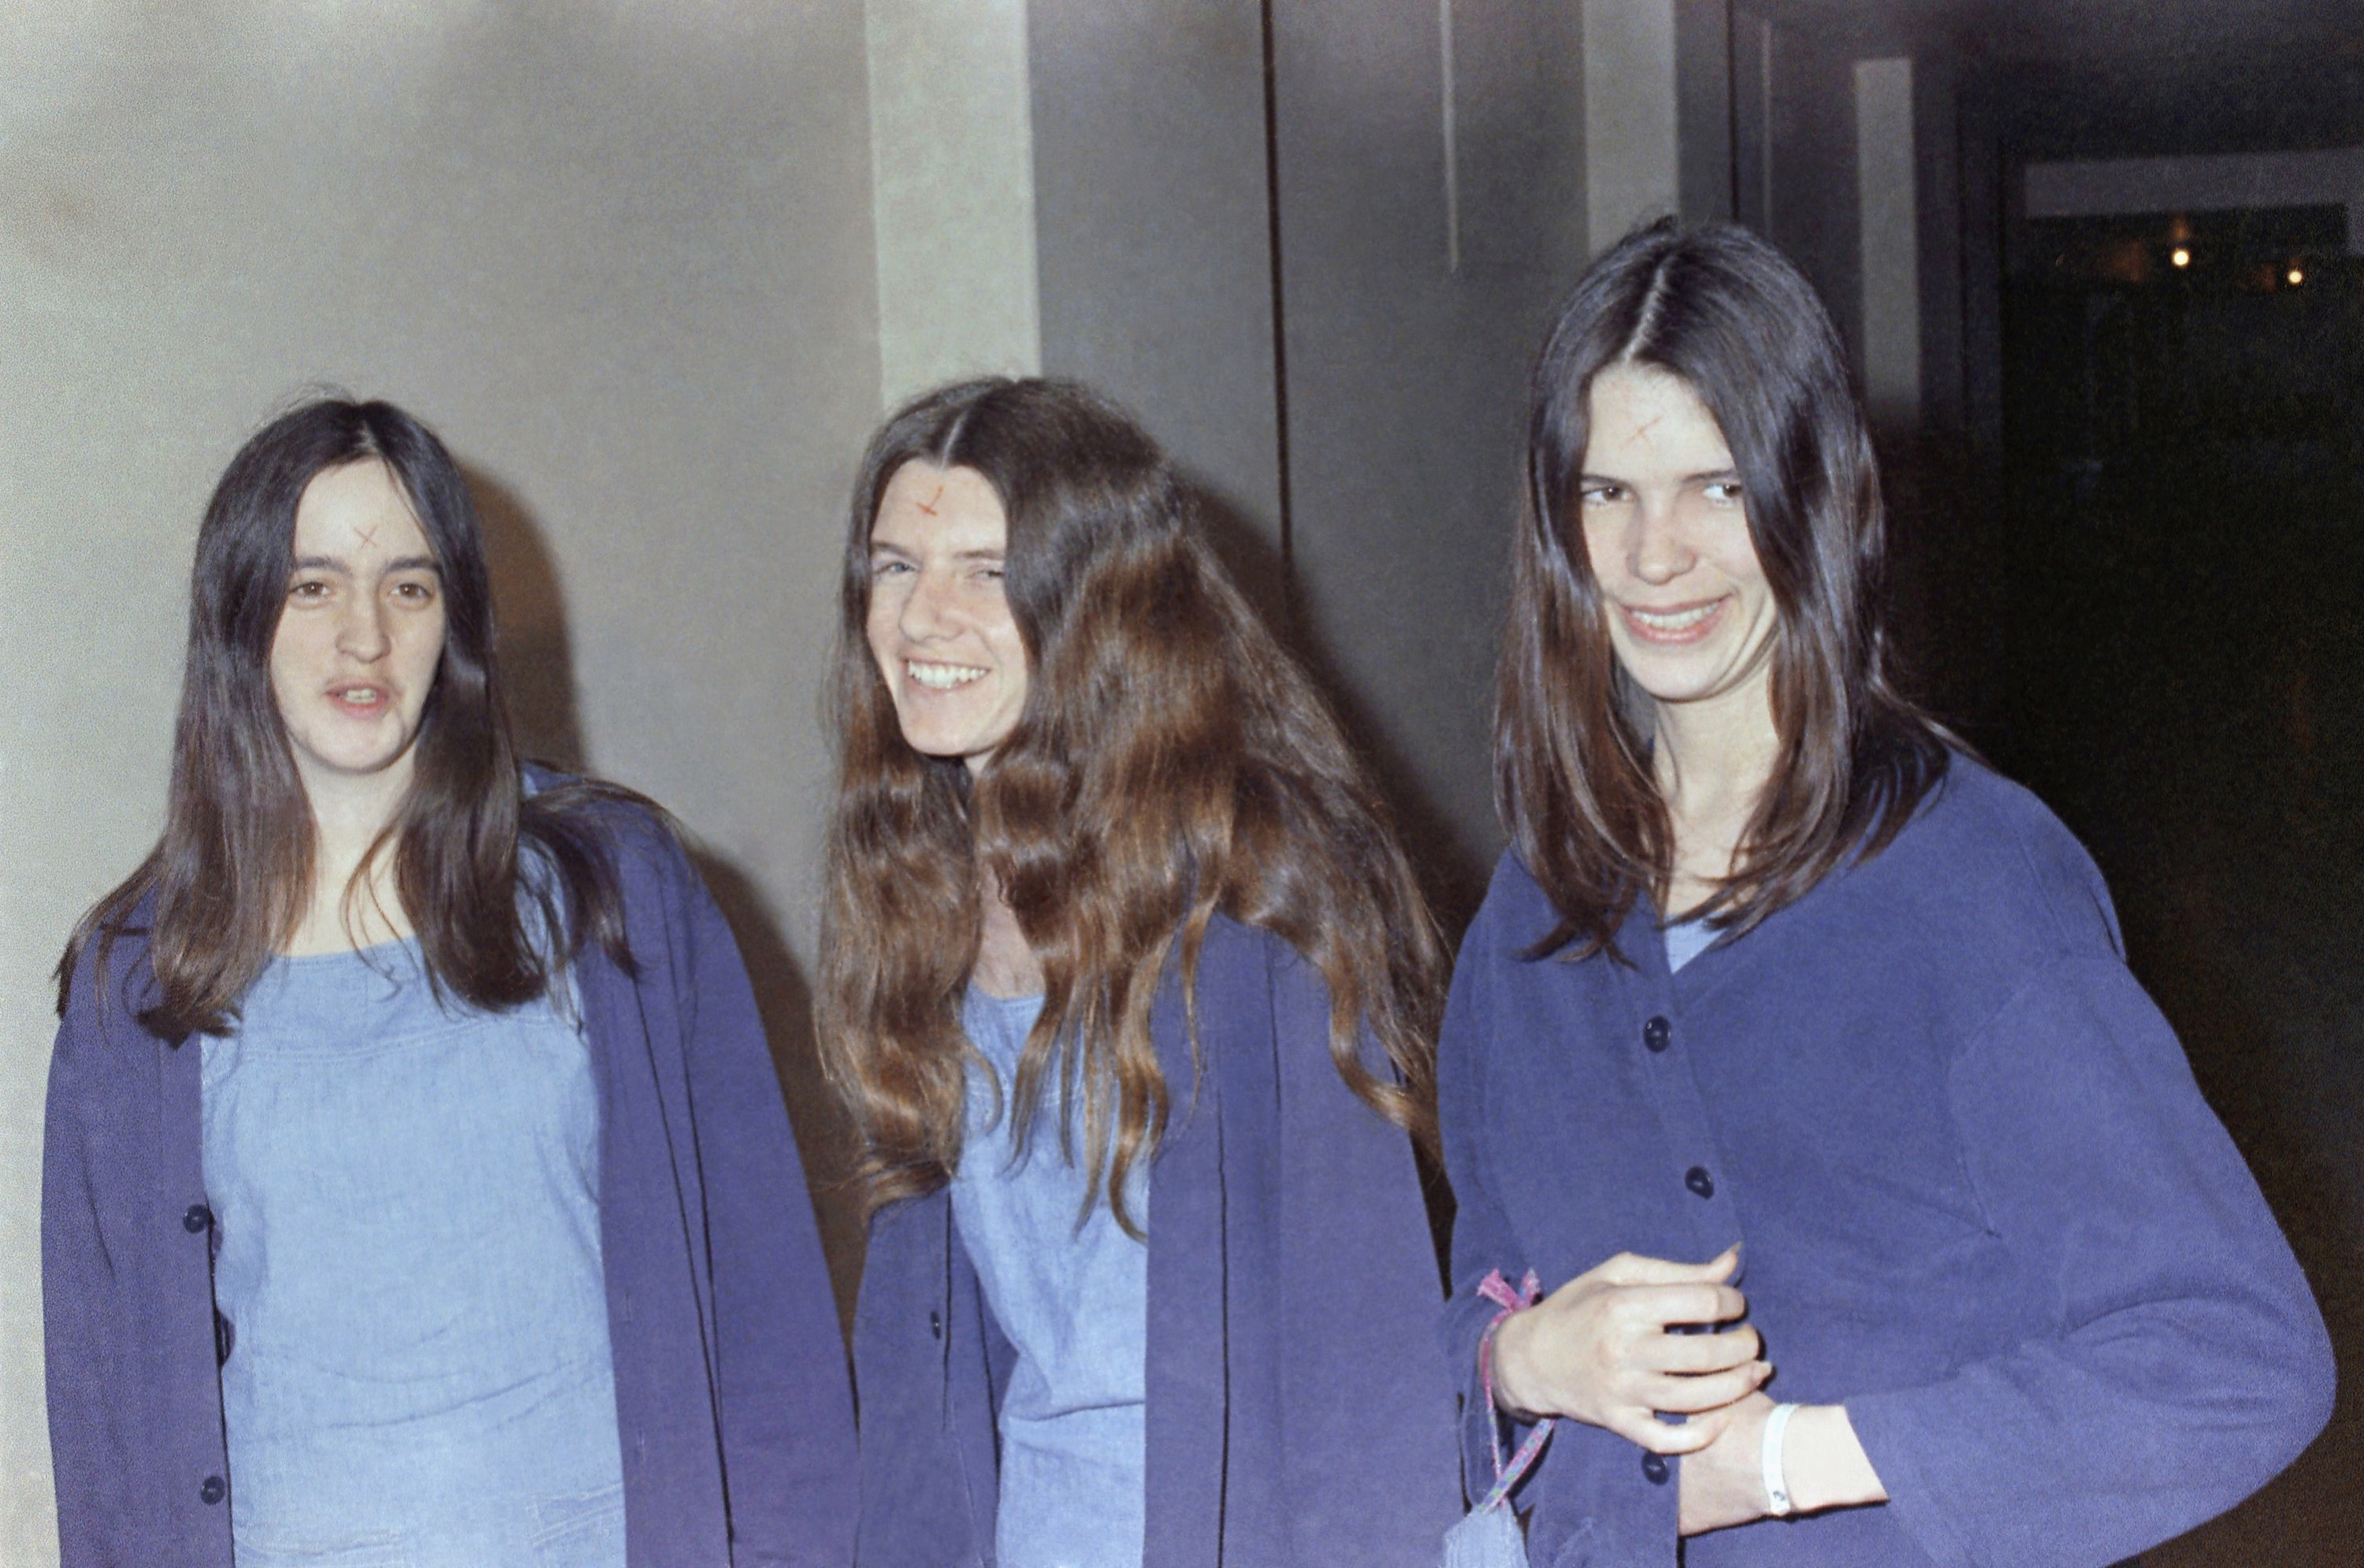 Fifty years later, we're still fascinated by the Manson